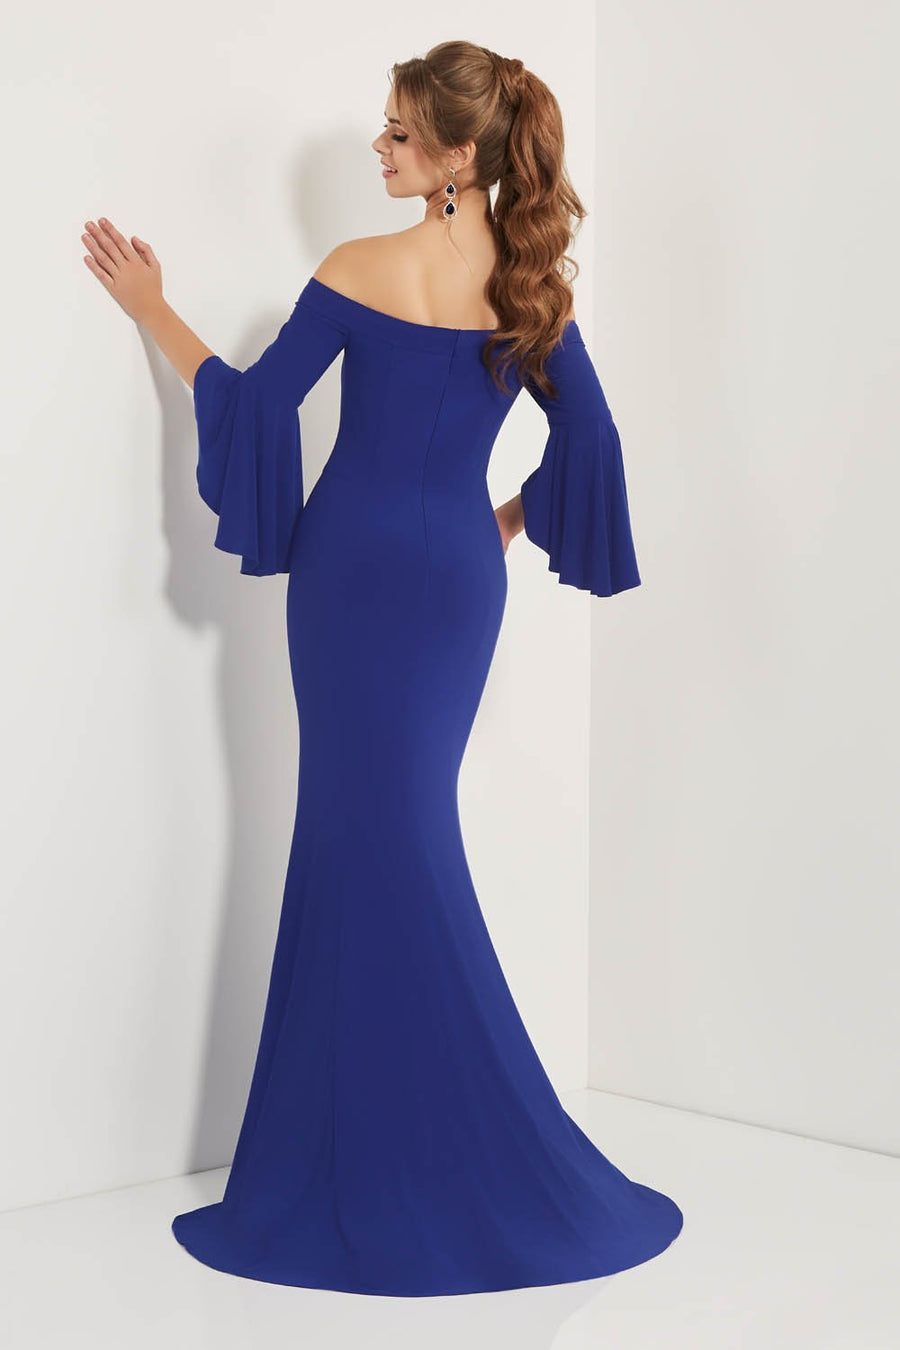 Studio 17 12706 prom dress images.  Studio 17 12706 is available in these colors: Black, Canary, Royal.